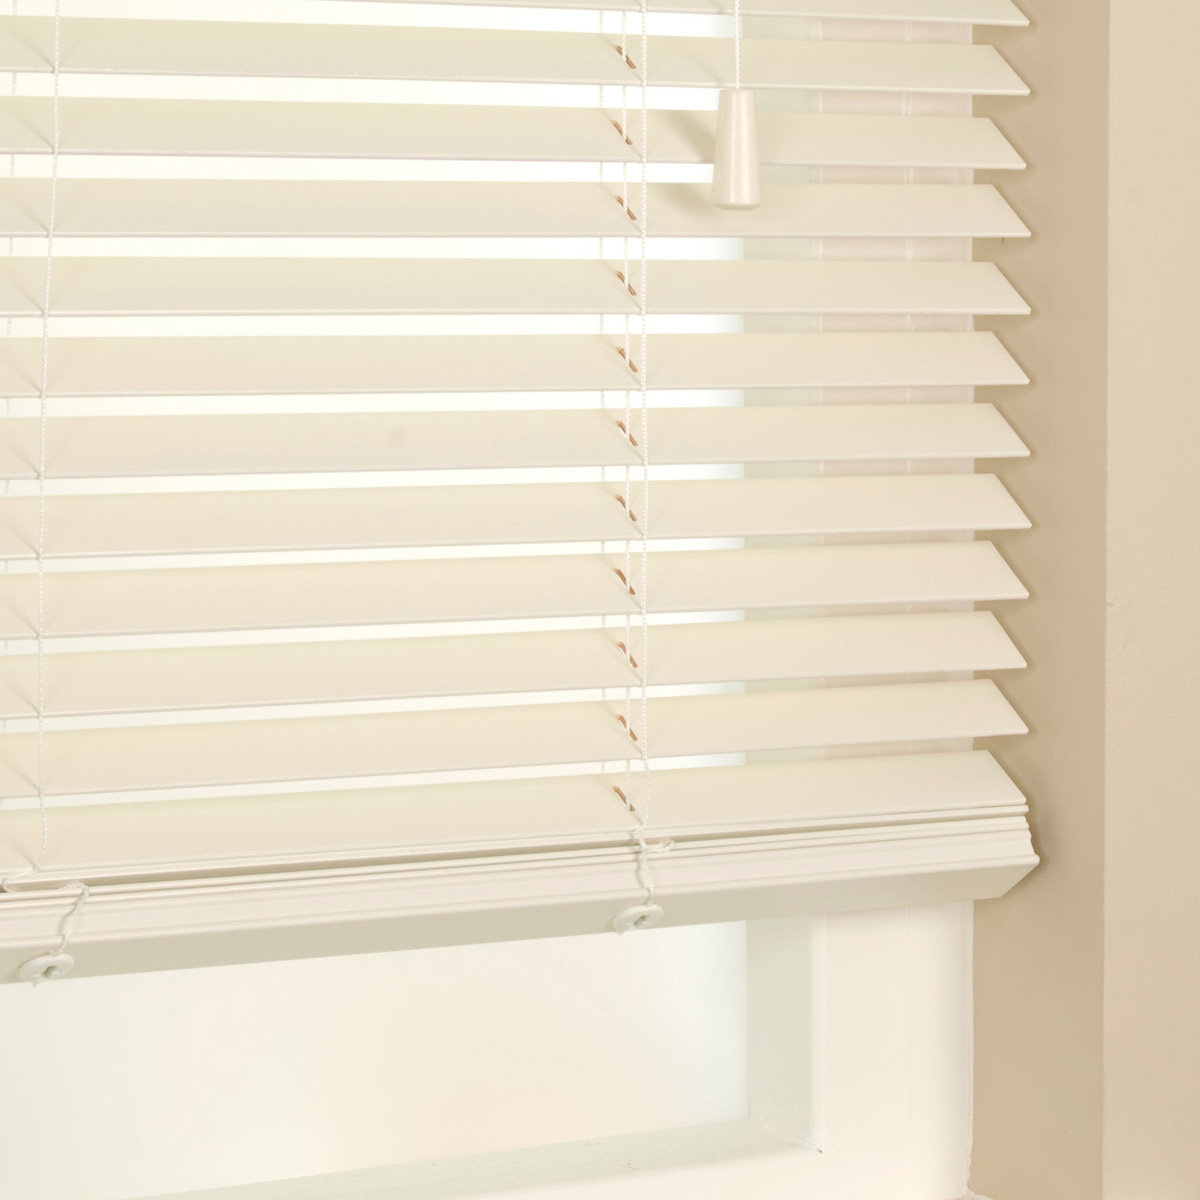 Cafe curtains bathroom - 35mm Primary Wood Venetian Blinds Off White